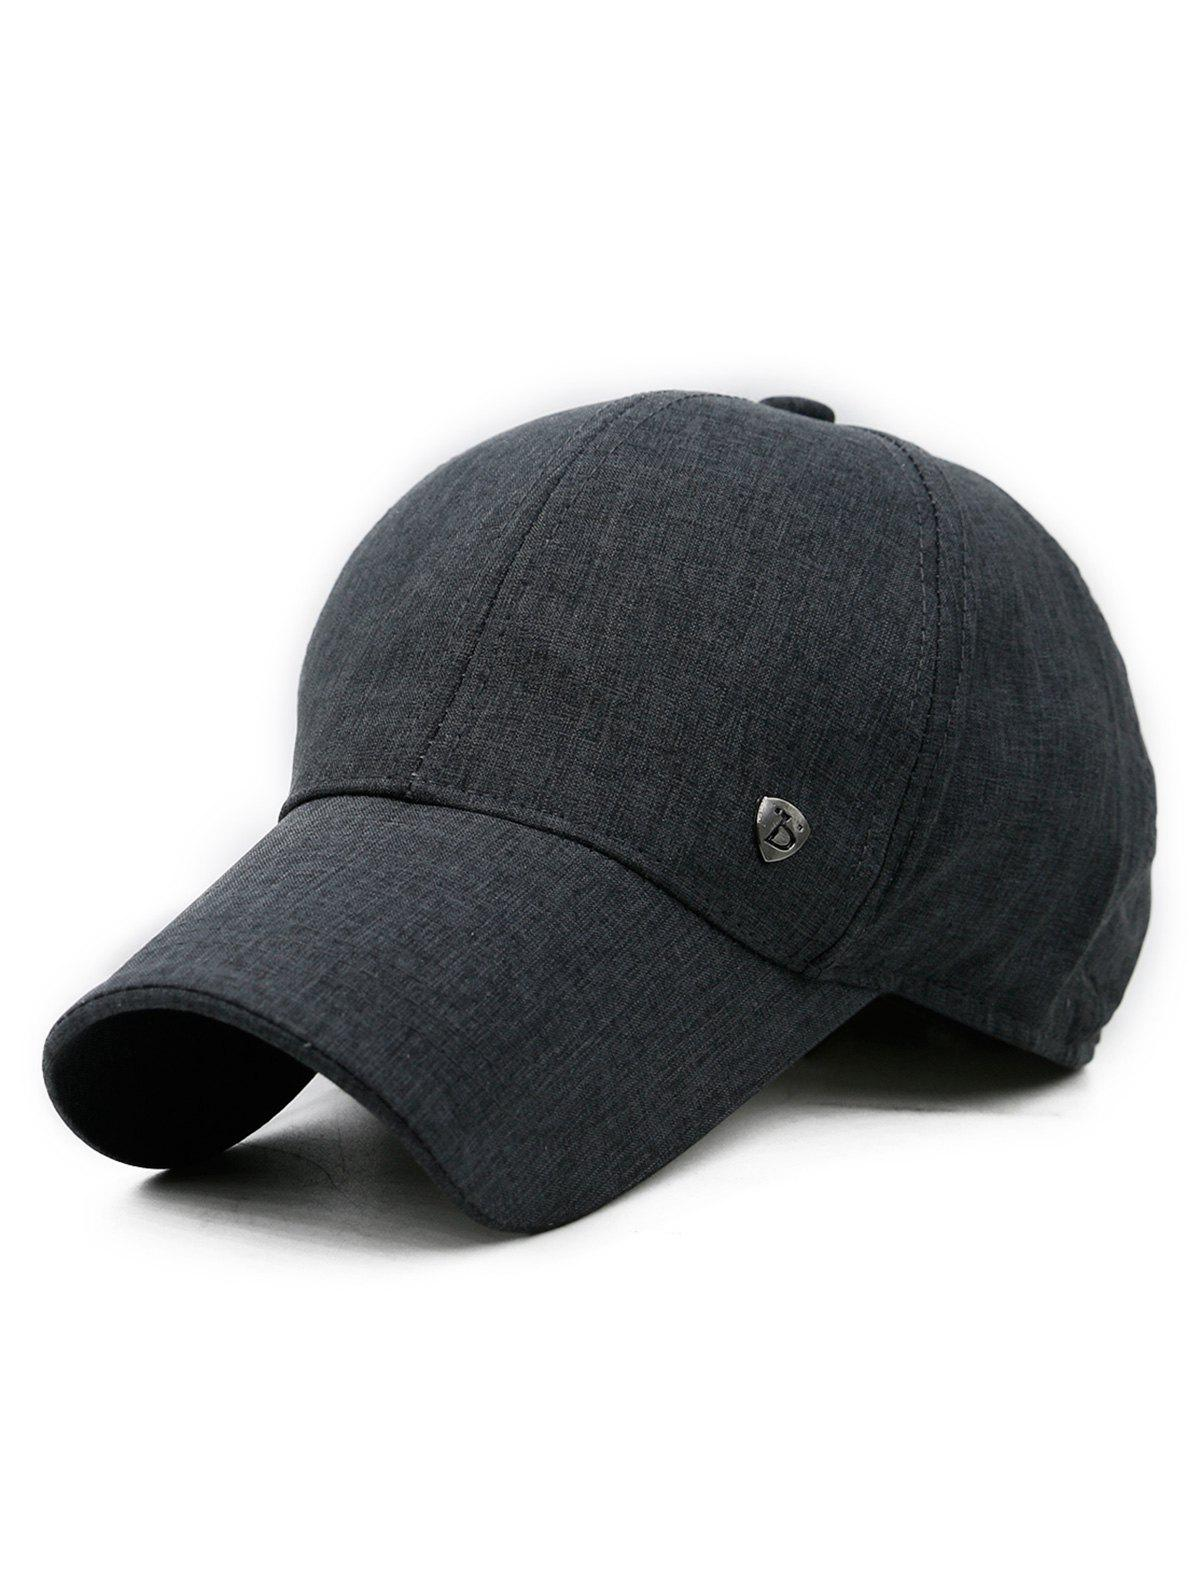 Affordable Solid Color Outdoor Baseball Cap